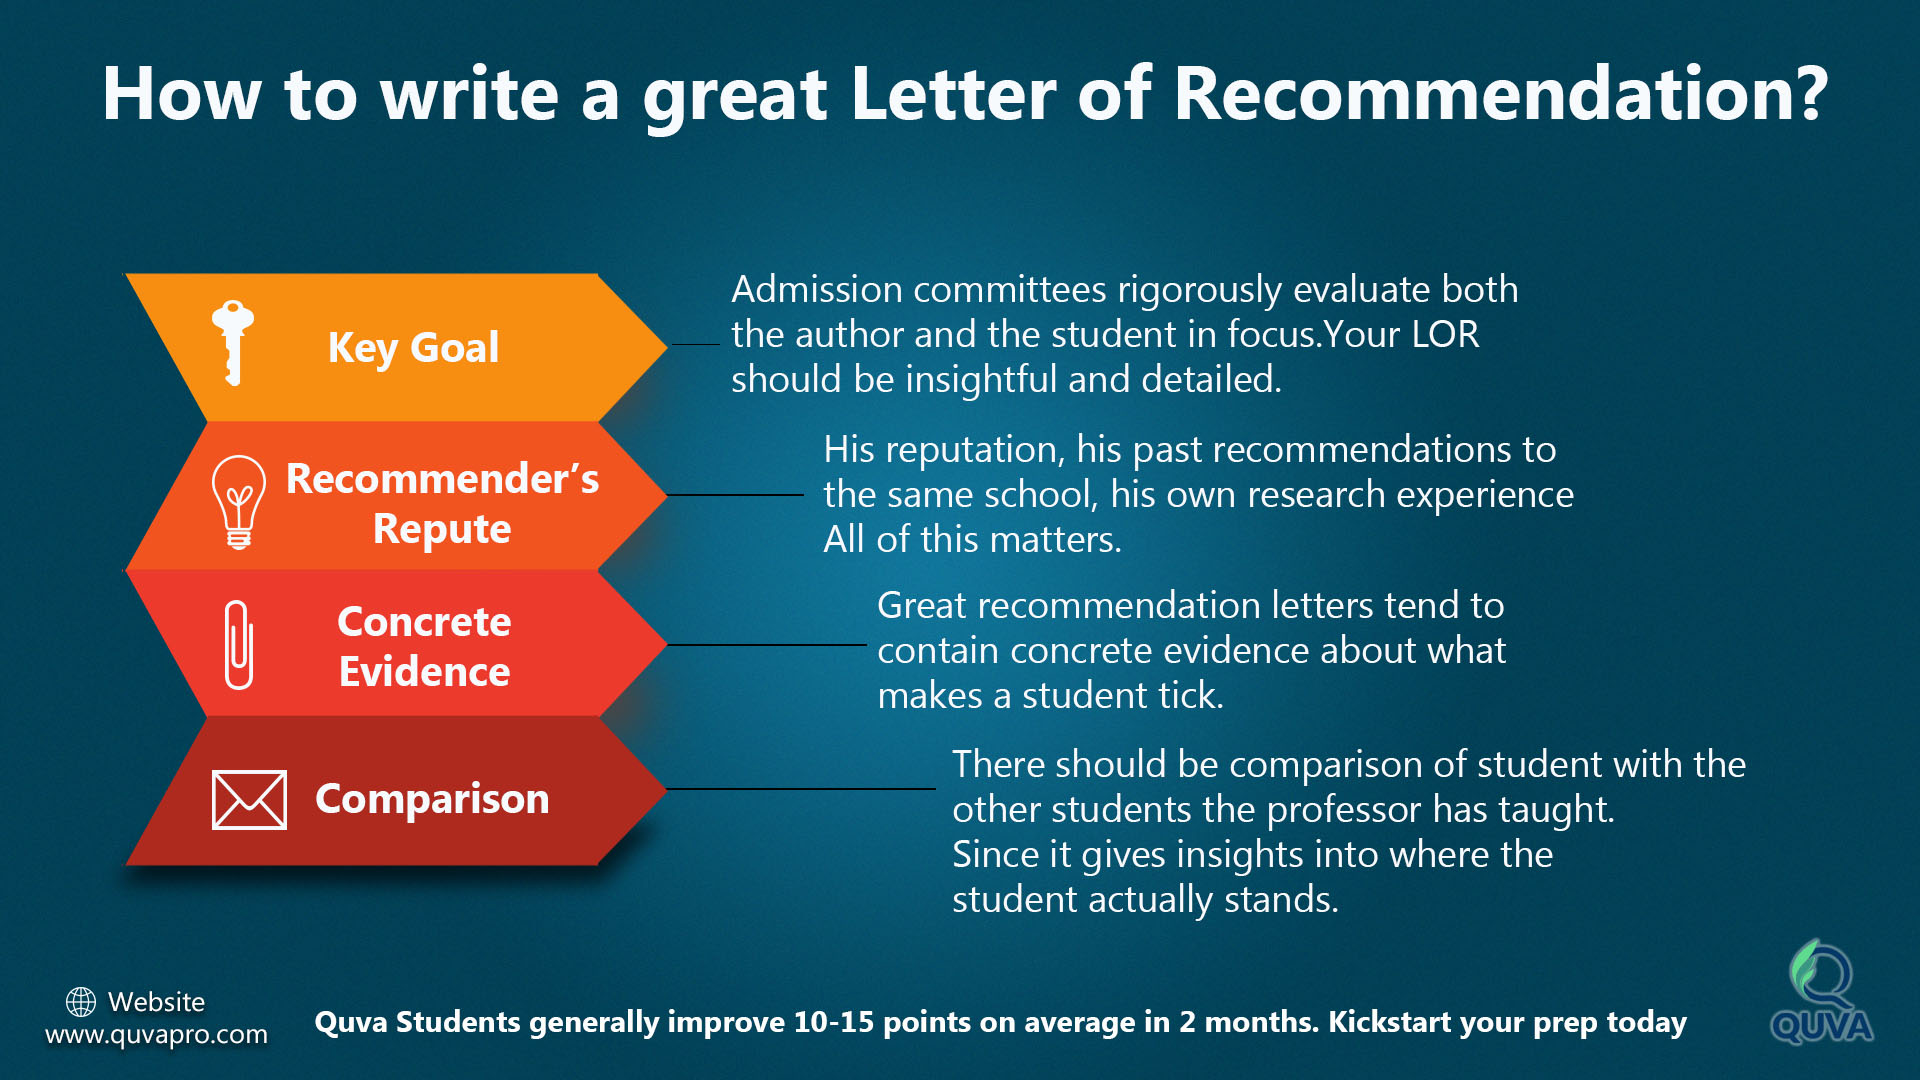 How-to-write-a-great-Letter-of-recommendation-1